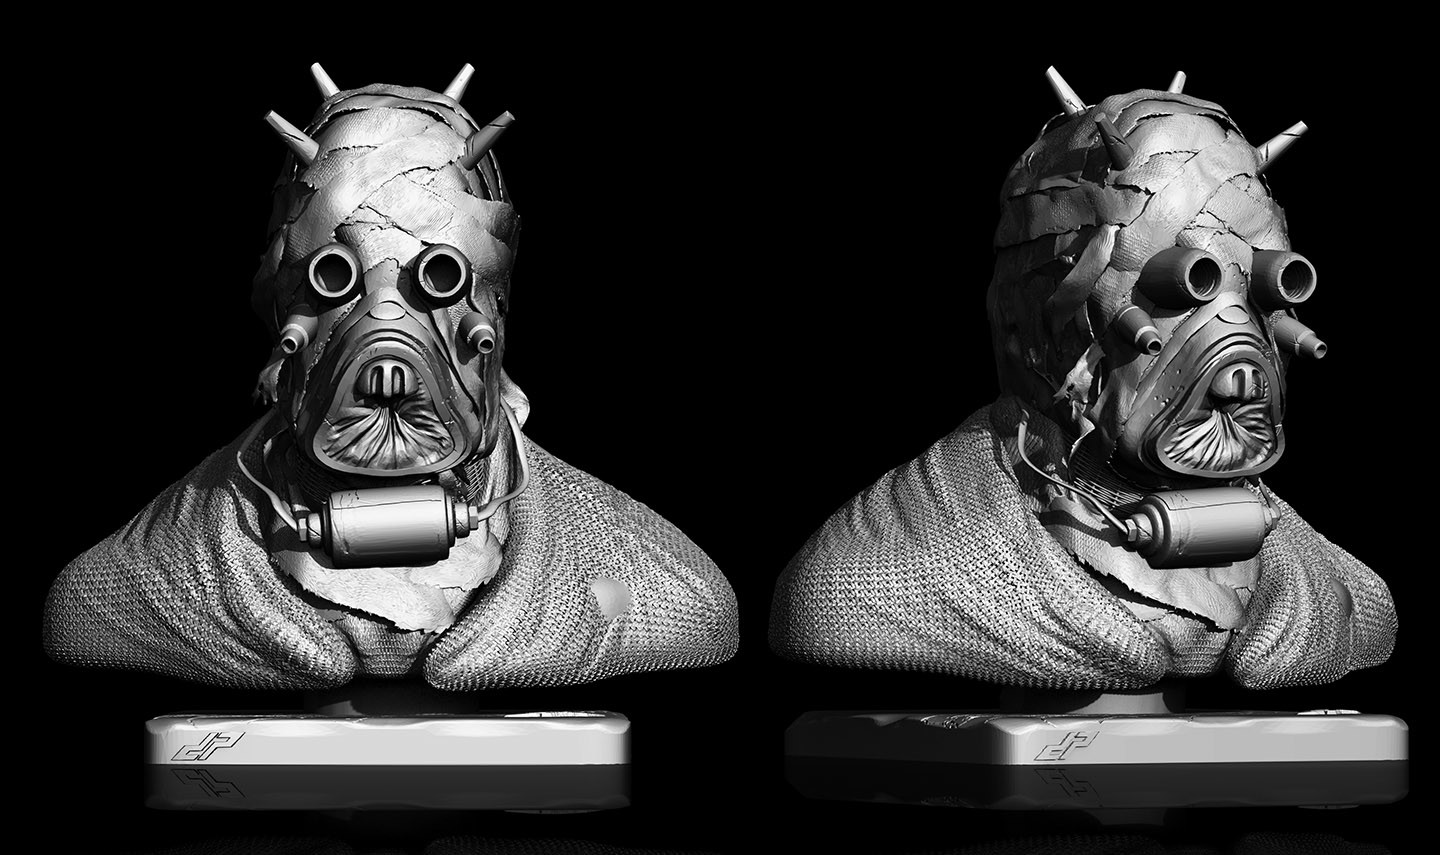 Dope pope tuskenraider stl by dp